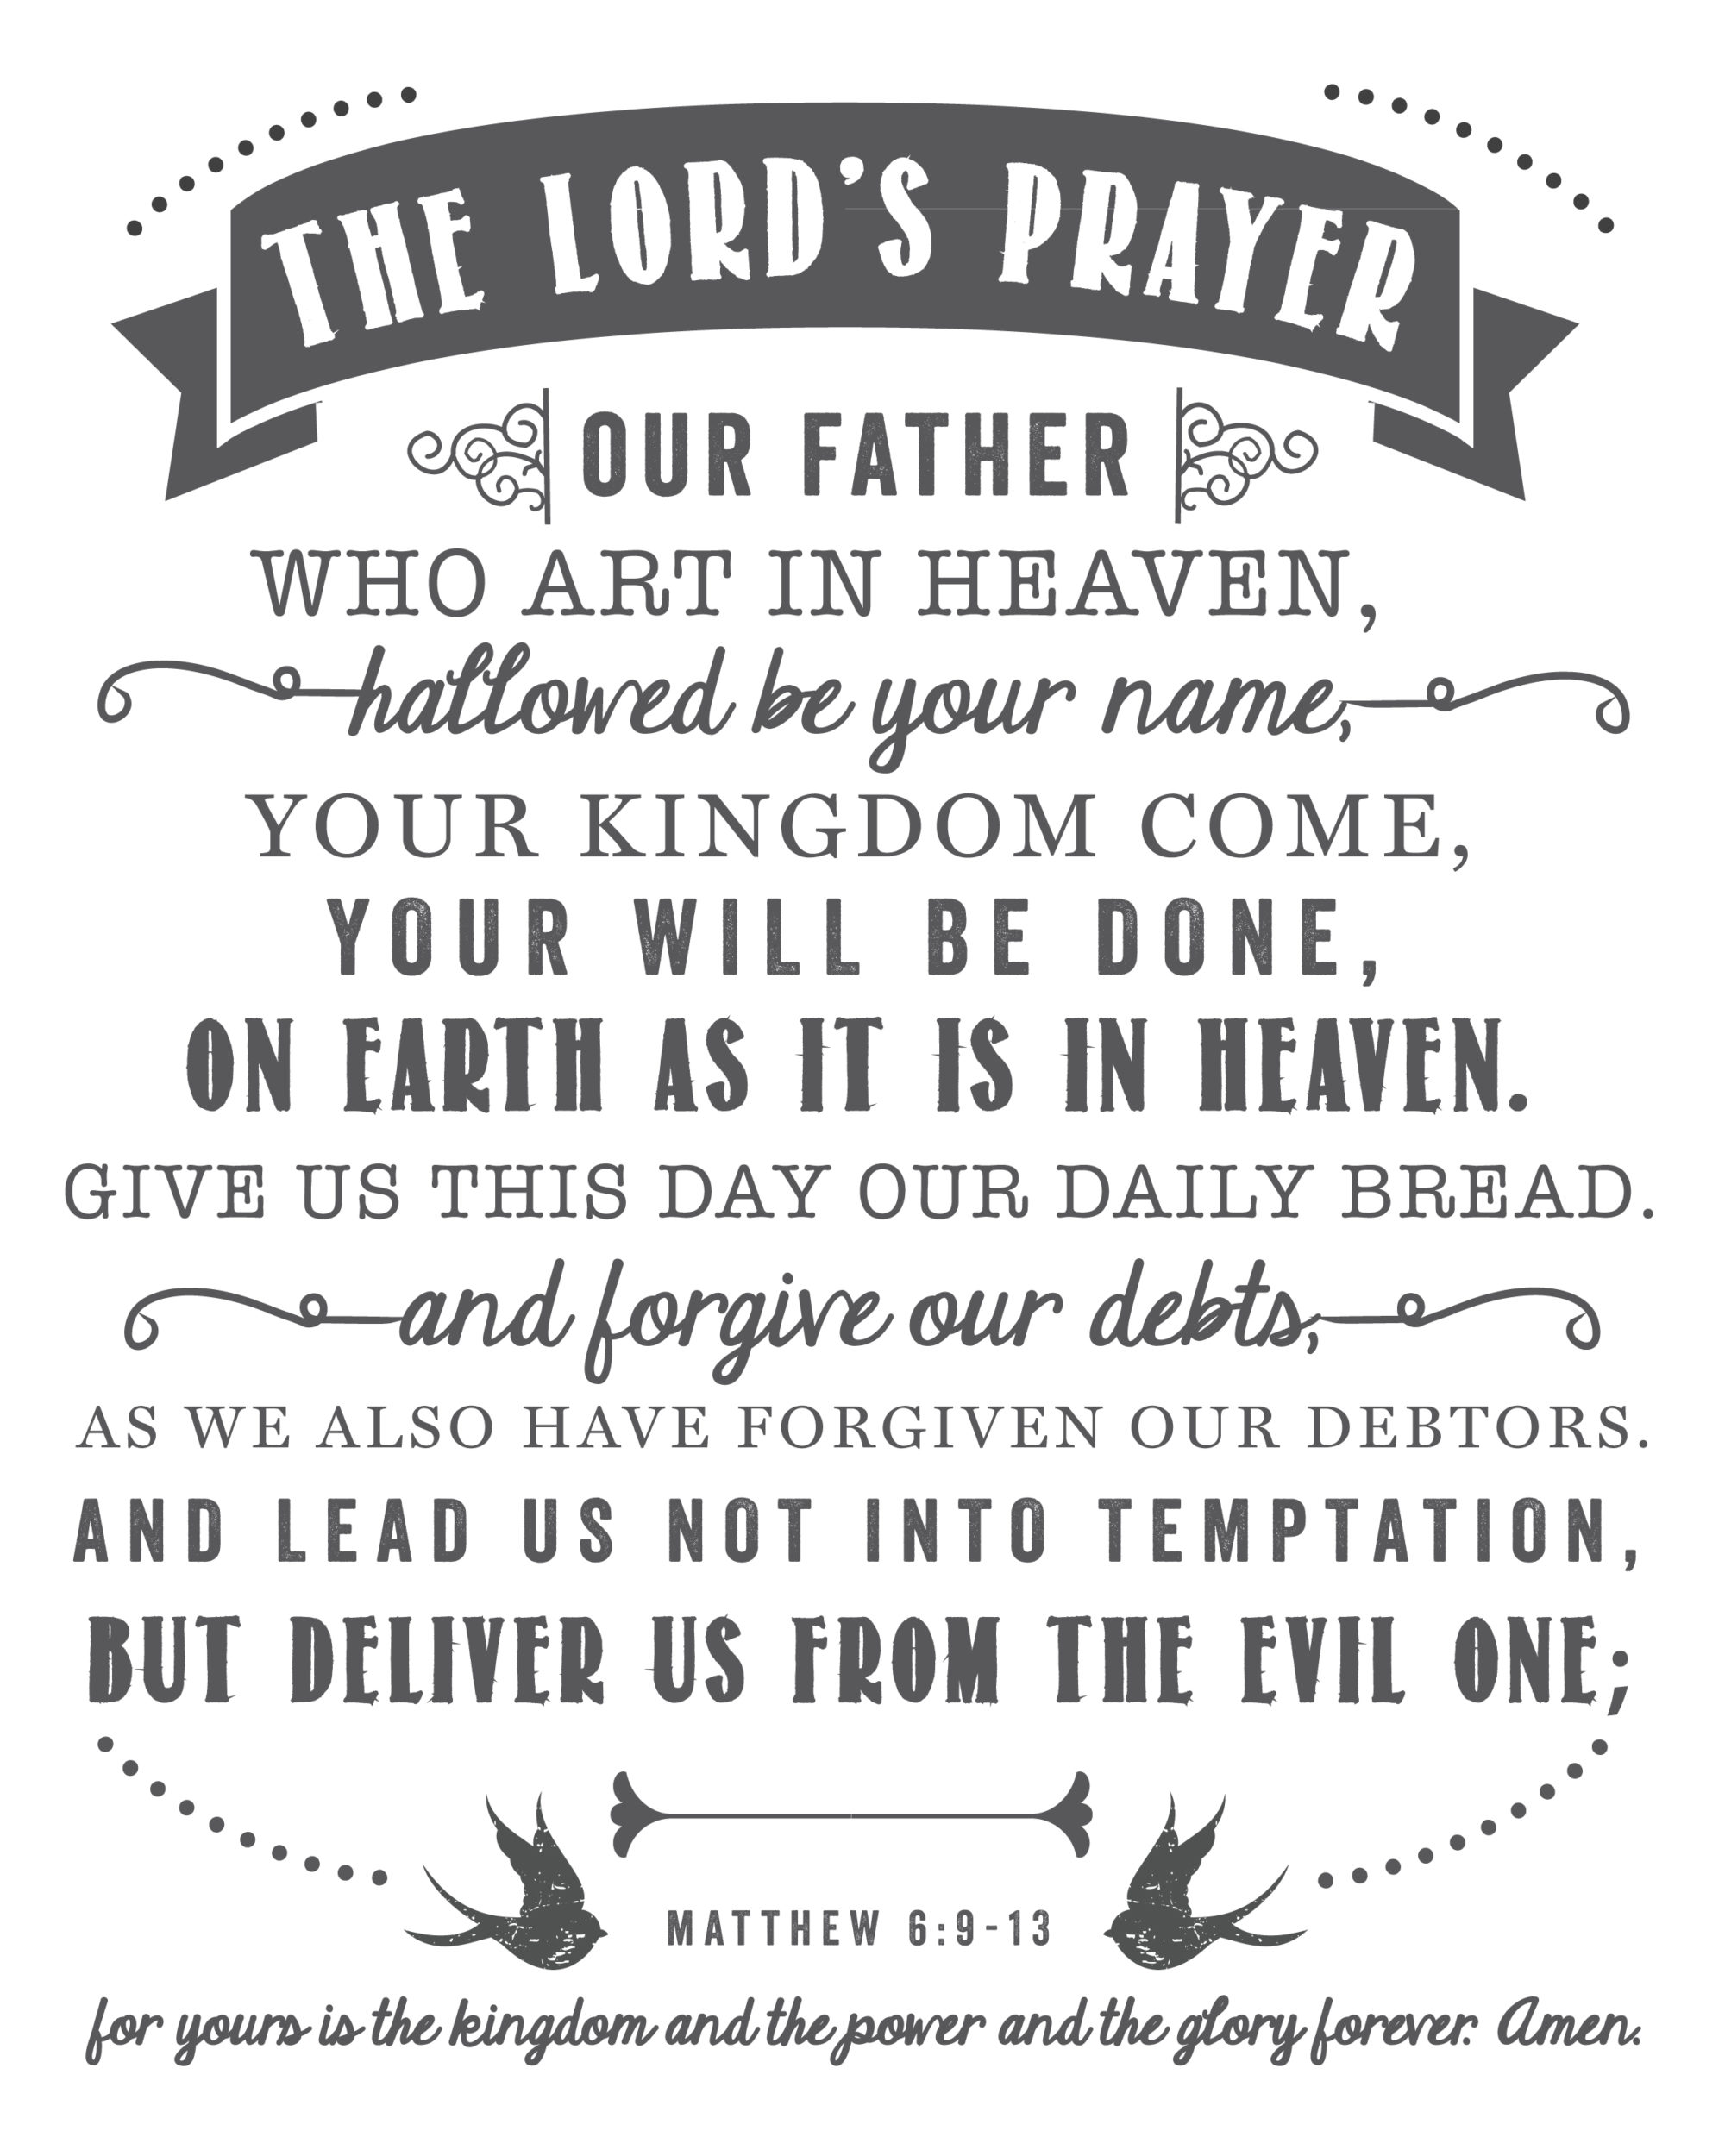 photo about Prayer Printable identify The Lords Prayer Absolutely free Printable - Sincerely, Sara D.